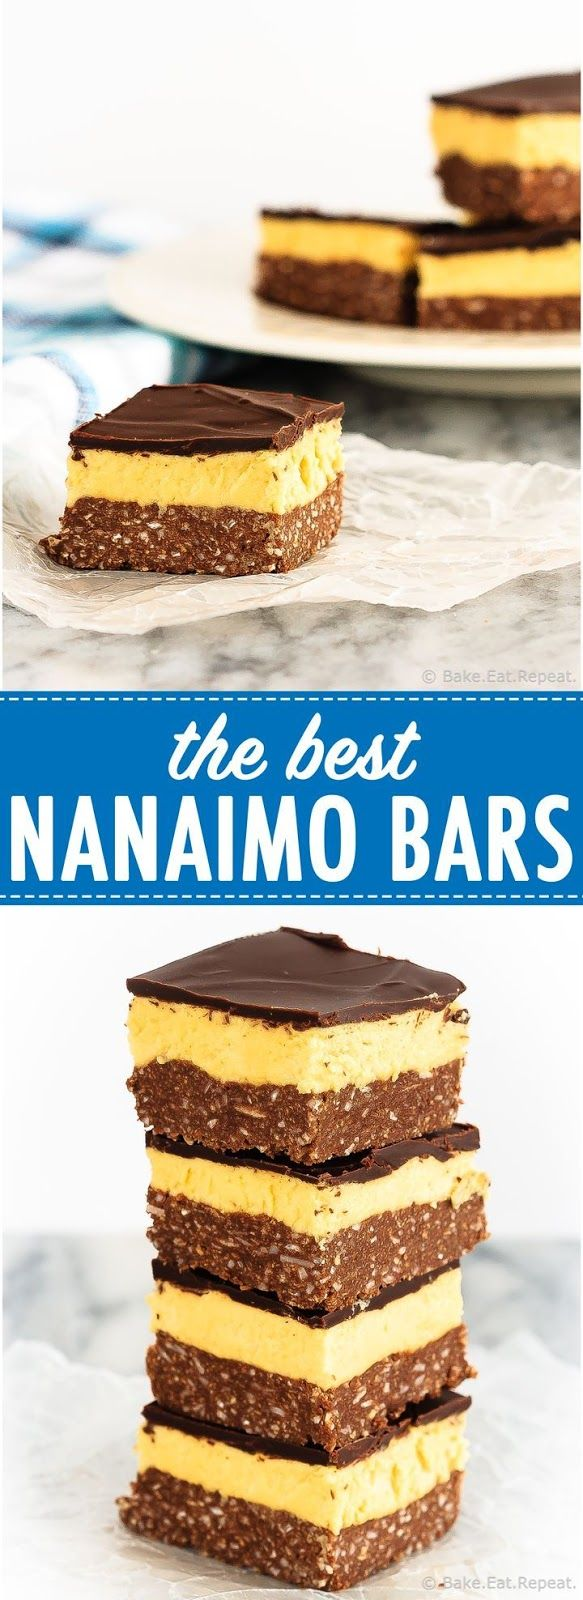 The Best Nanaimo Bars #nanaimobars